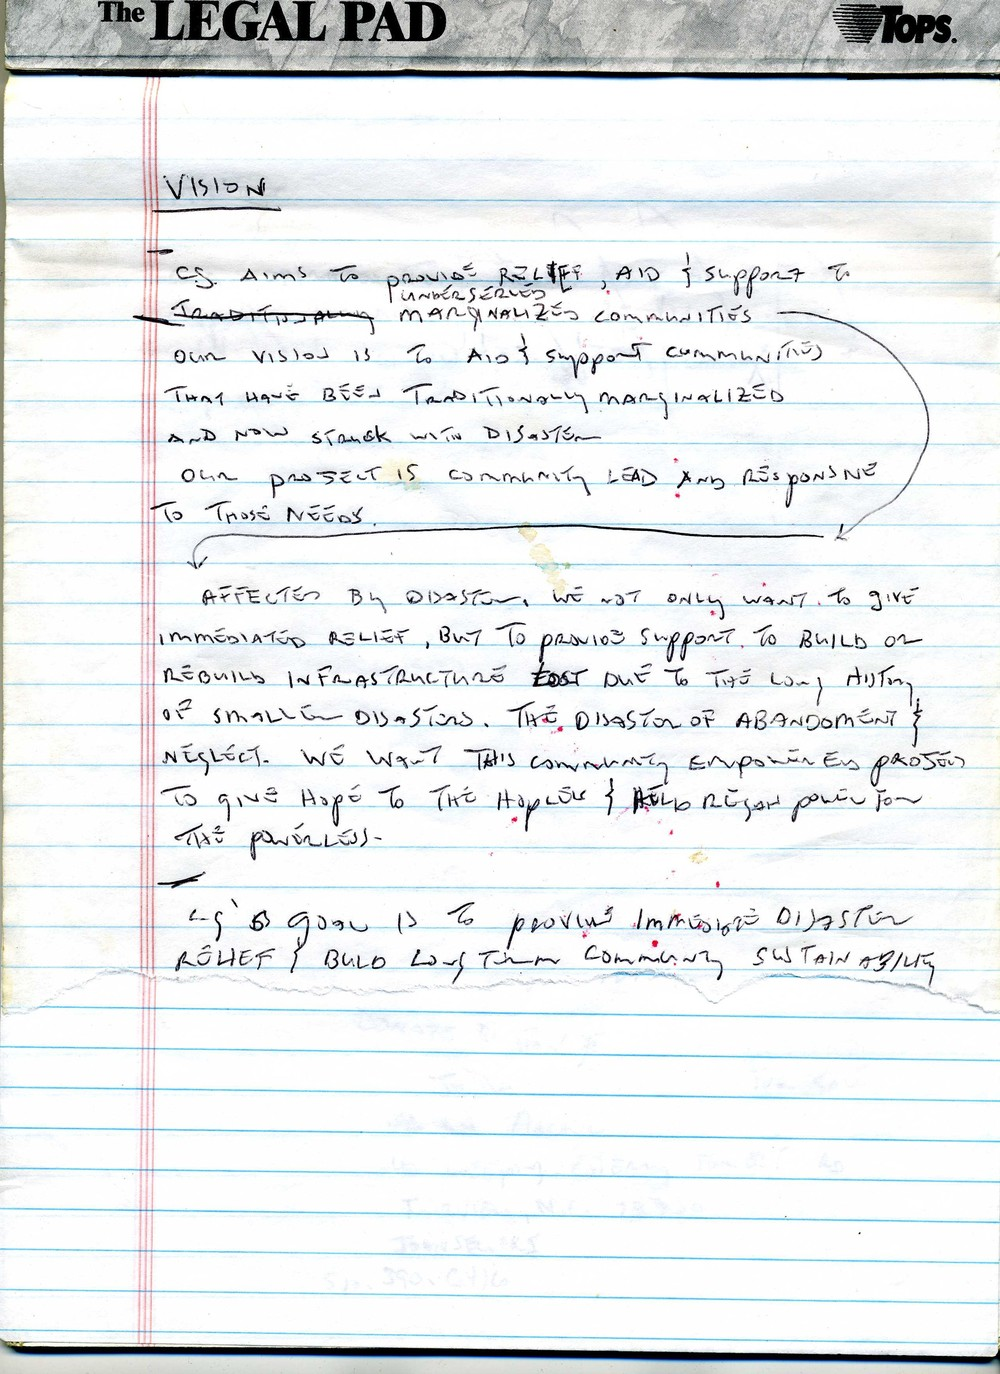 CG_original early DRAFT of vision sept 05.jpg